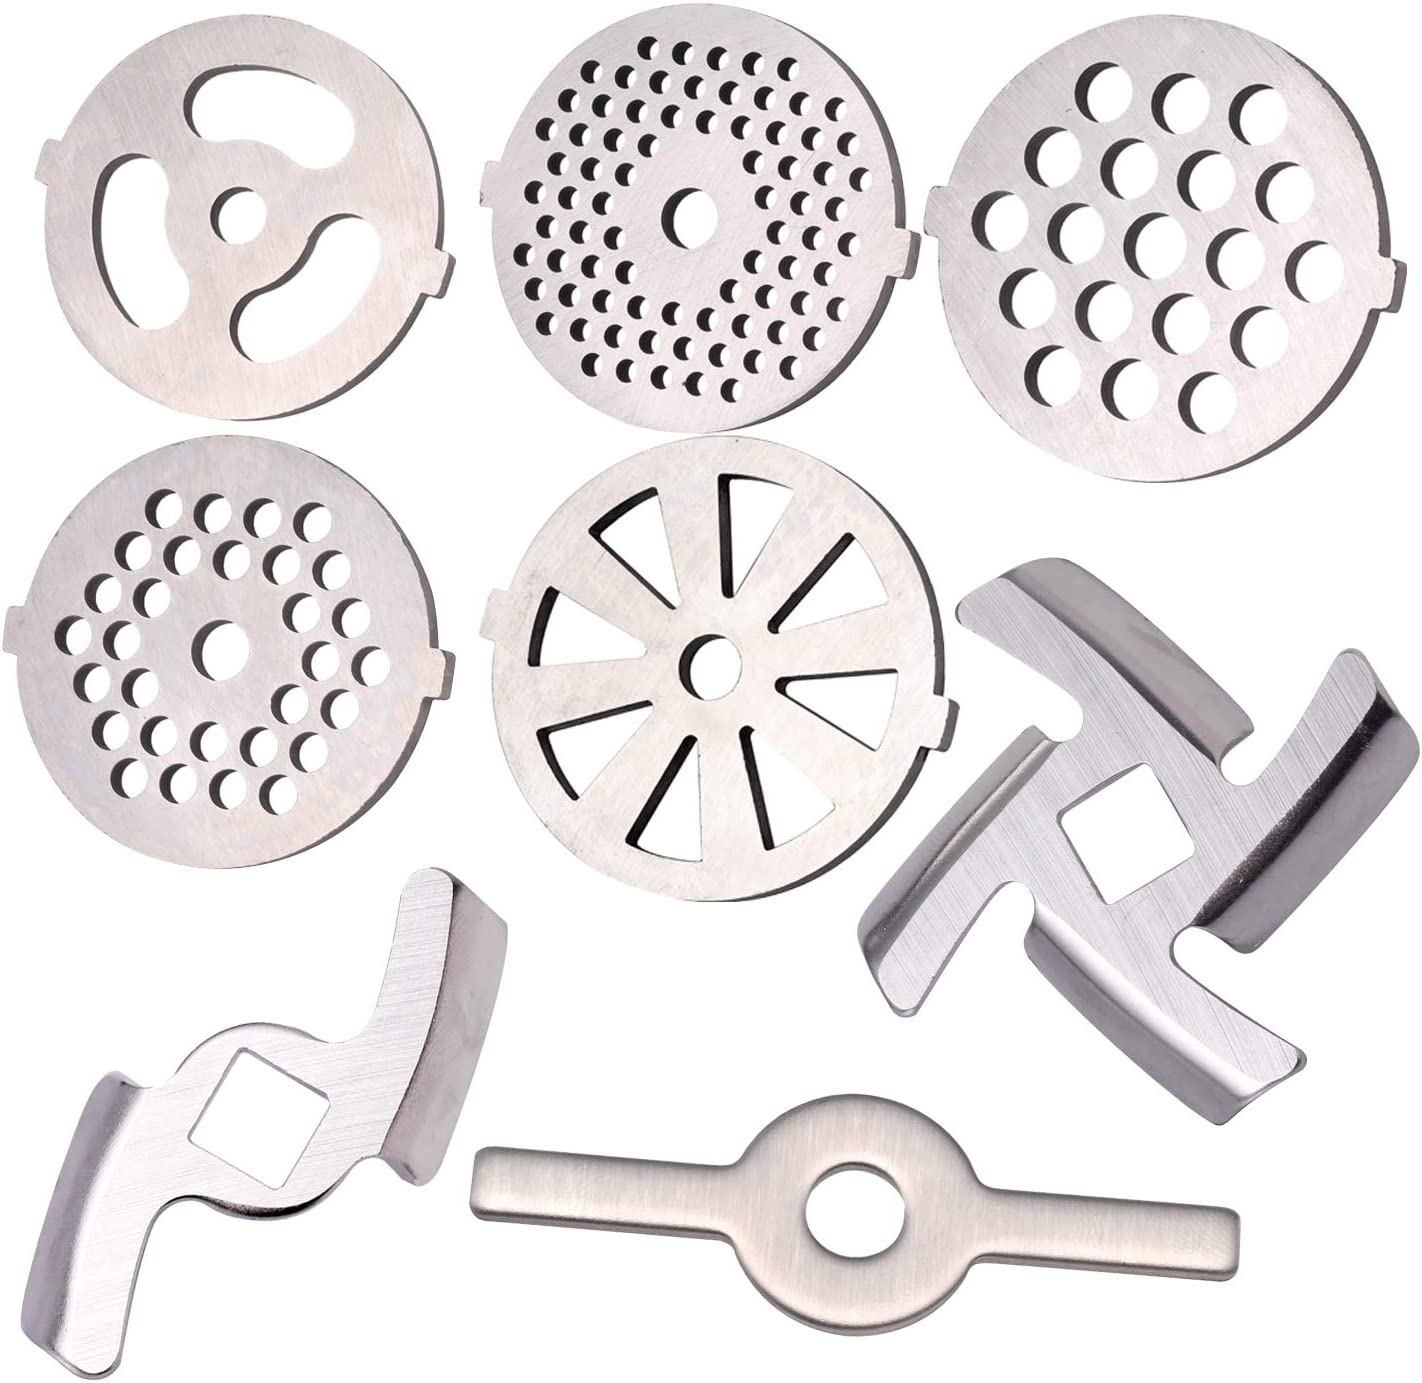 8 Pcs Meat Grinder Attachments, Metal Standard Universal Food Grinder Replacement For Make Sausage and Burgers, Grinding Plates Blades Included